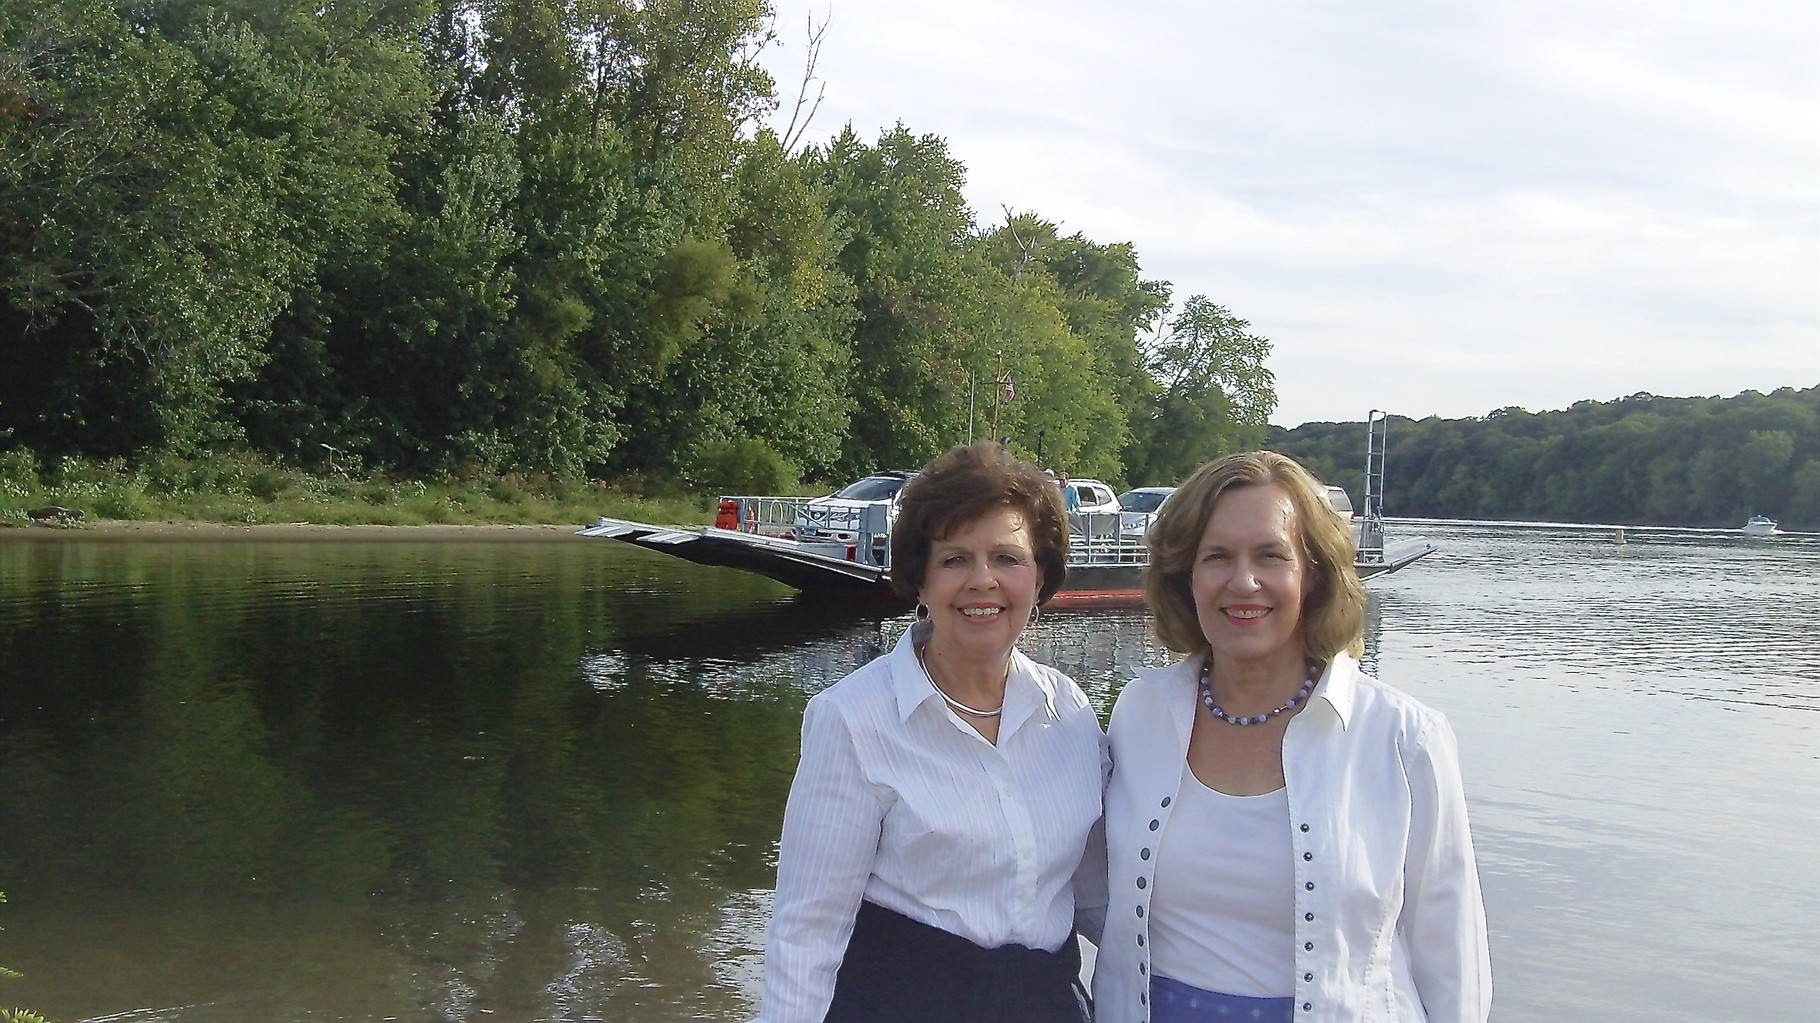 Cousin Kathy & Lorraine, September, 2015 Connecticut River